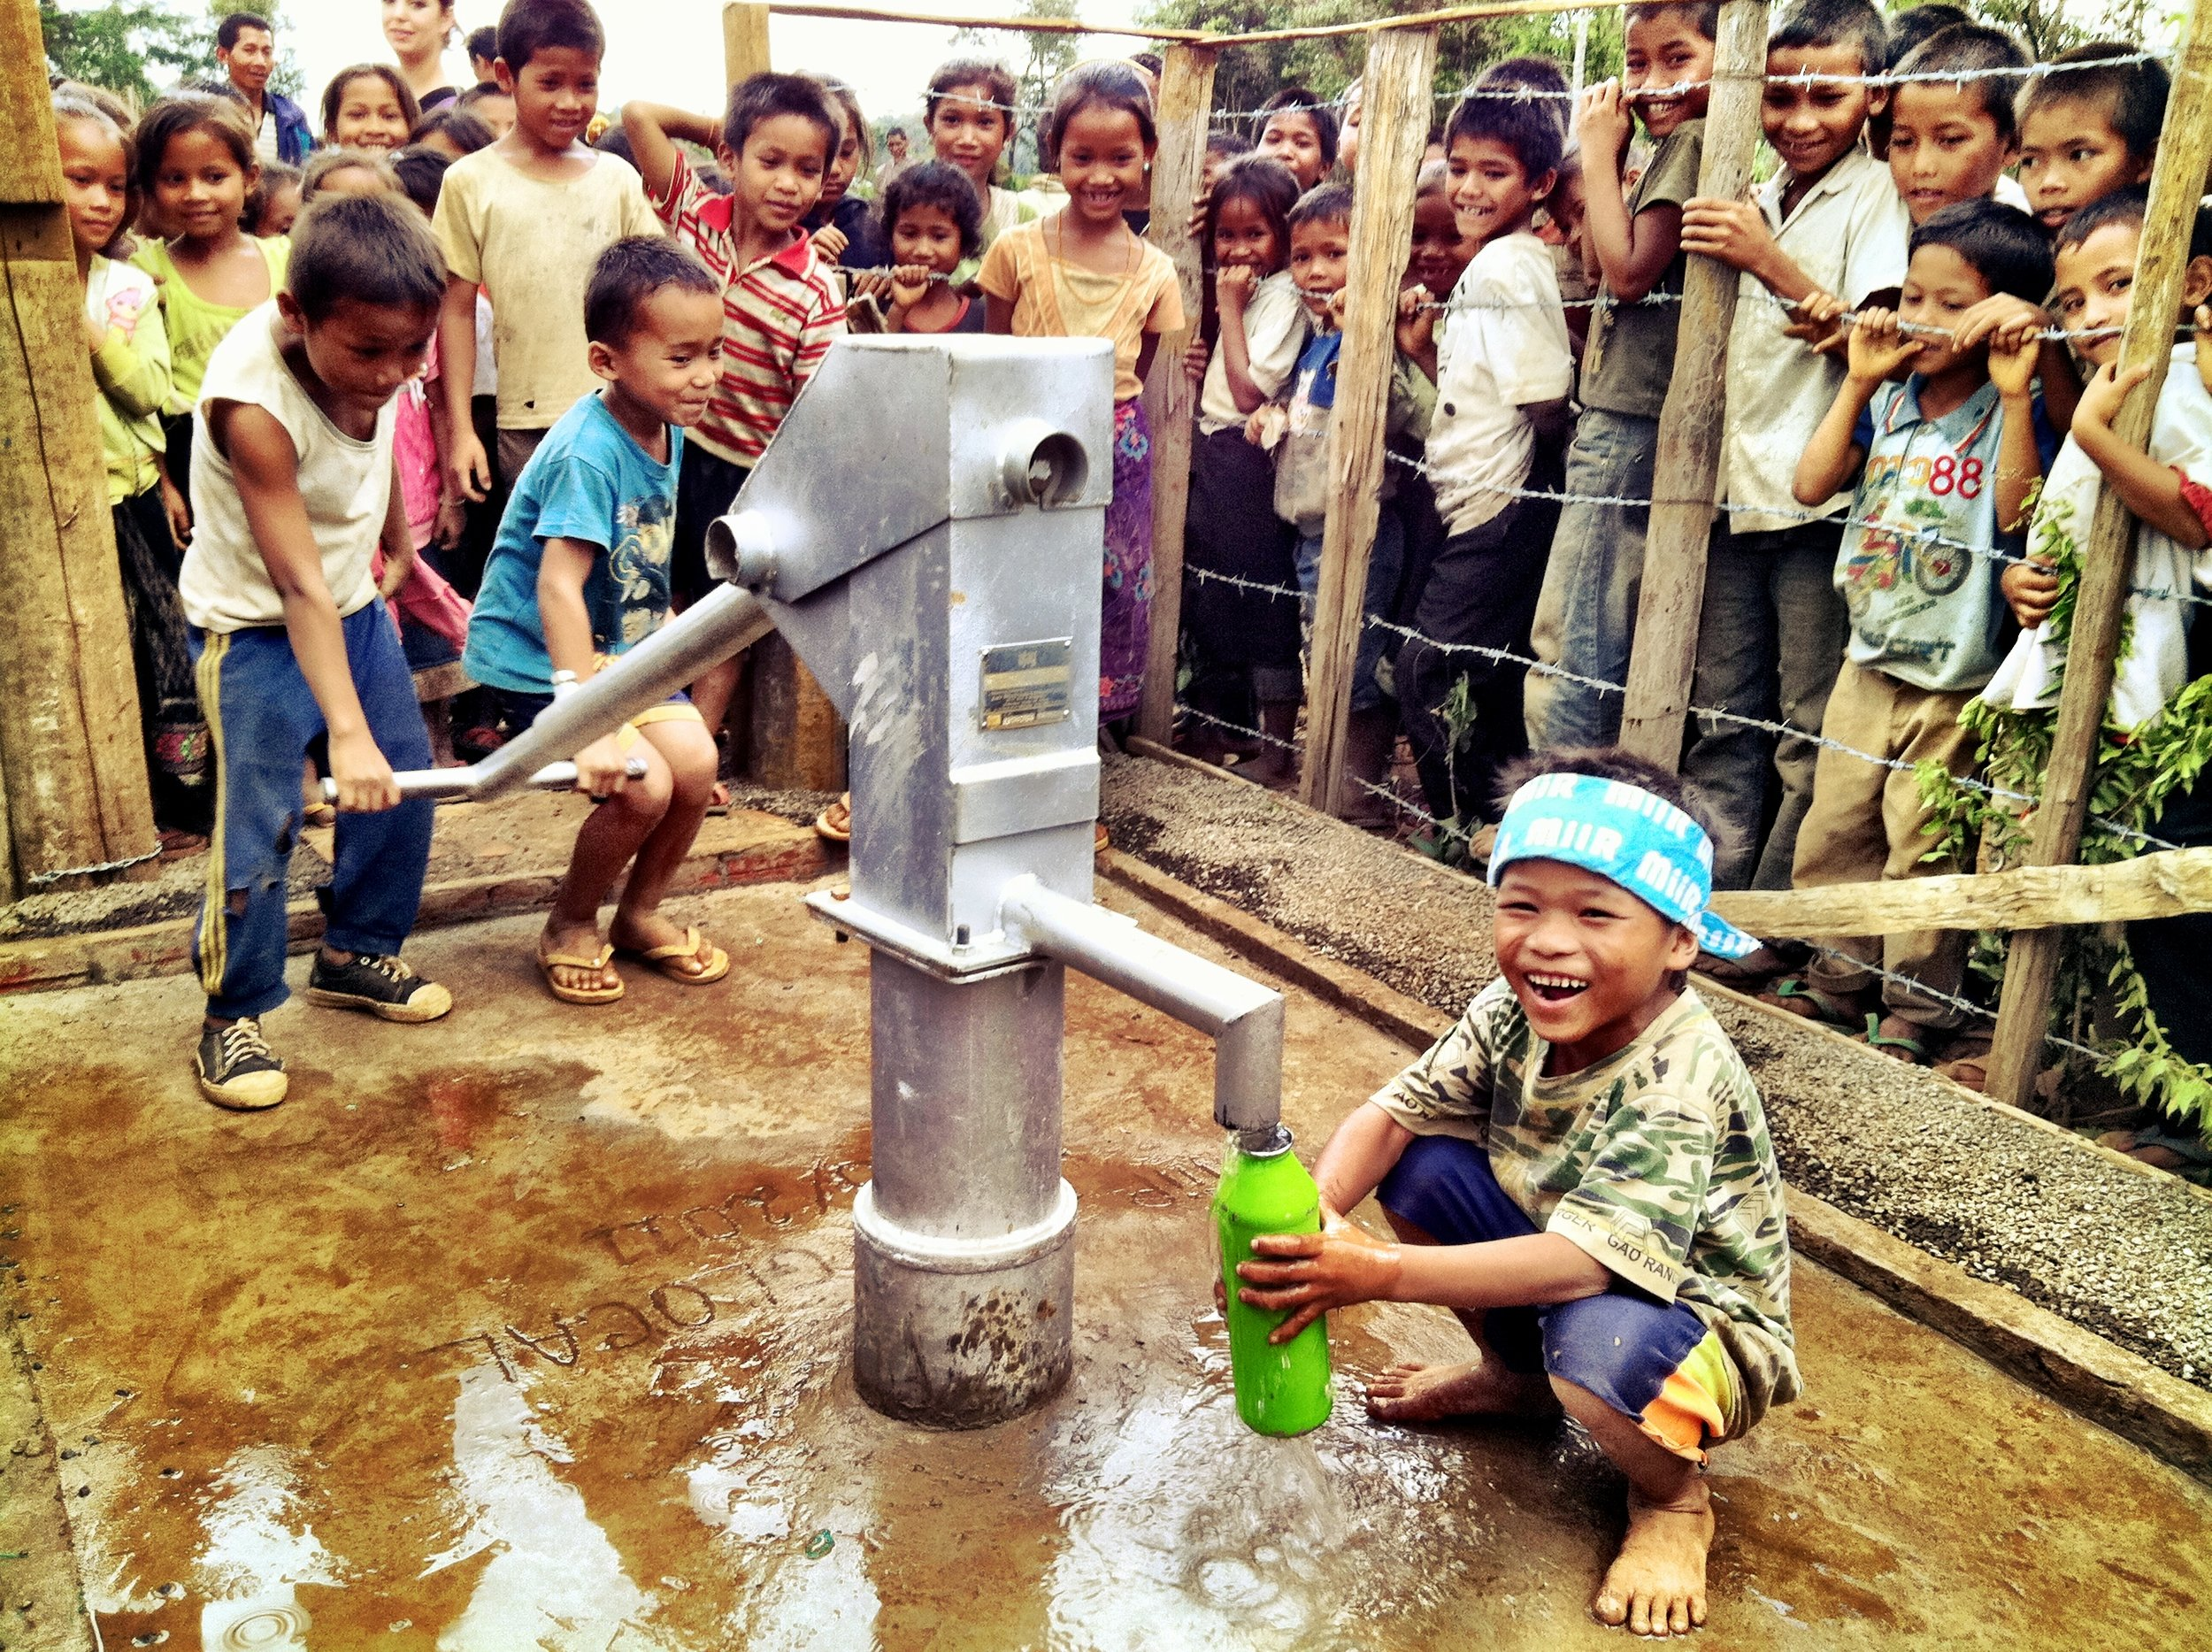 Jhai water well #1, Nong Phanoun village, 197 children. This water well was drilled in 2012 in partnership with  MiiR  a Seattle based social business.